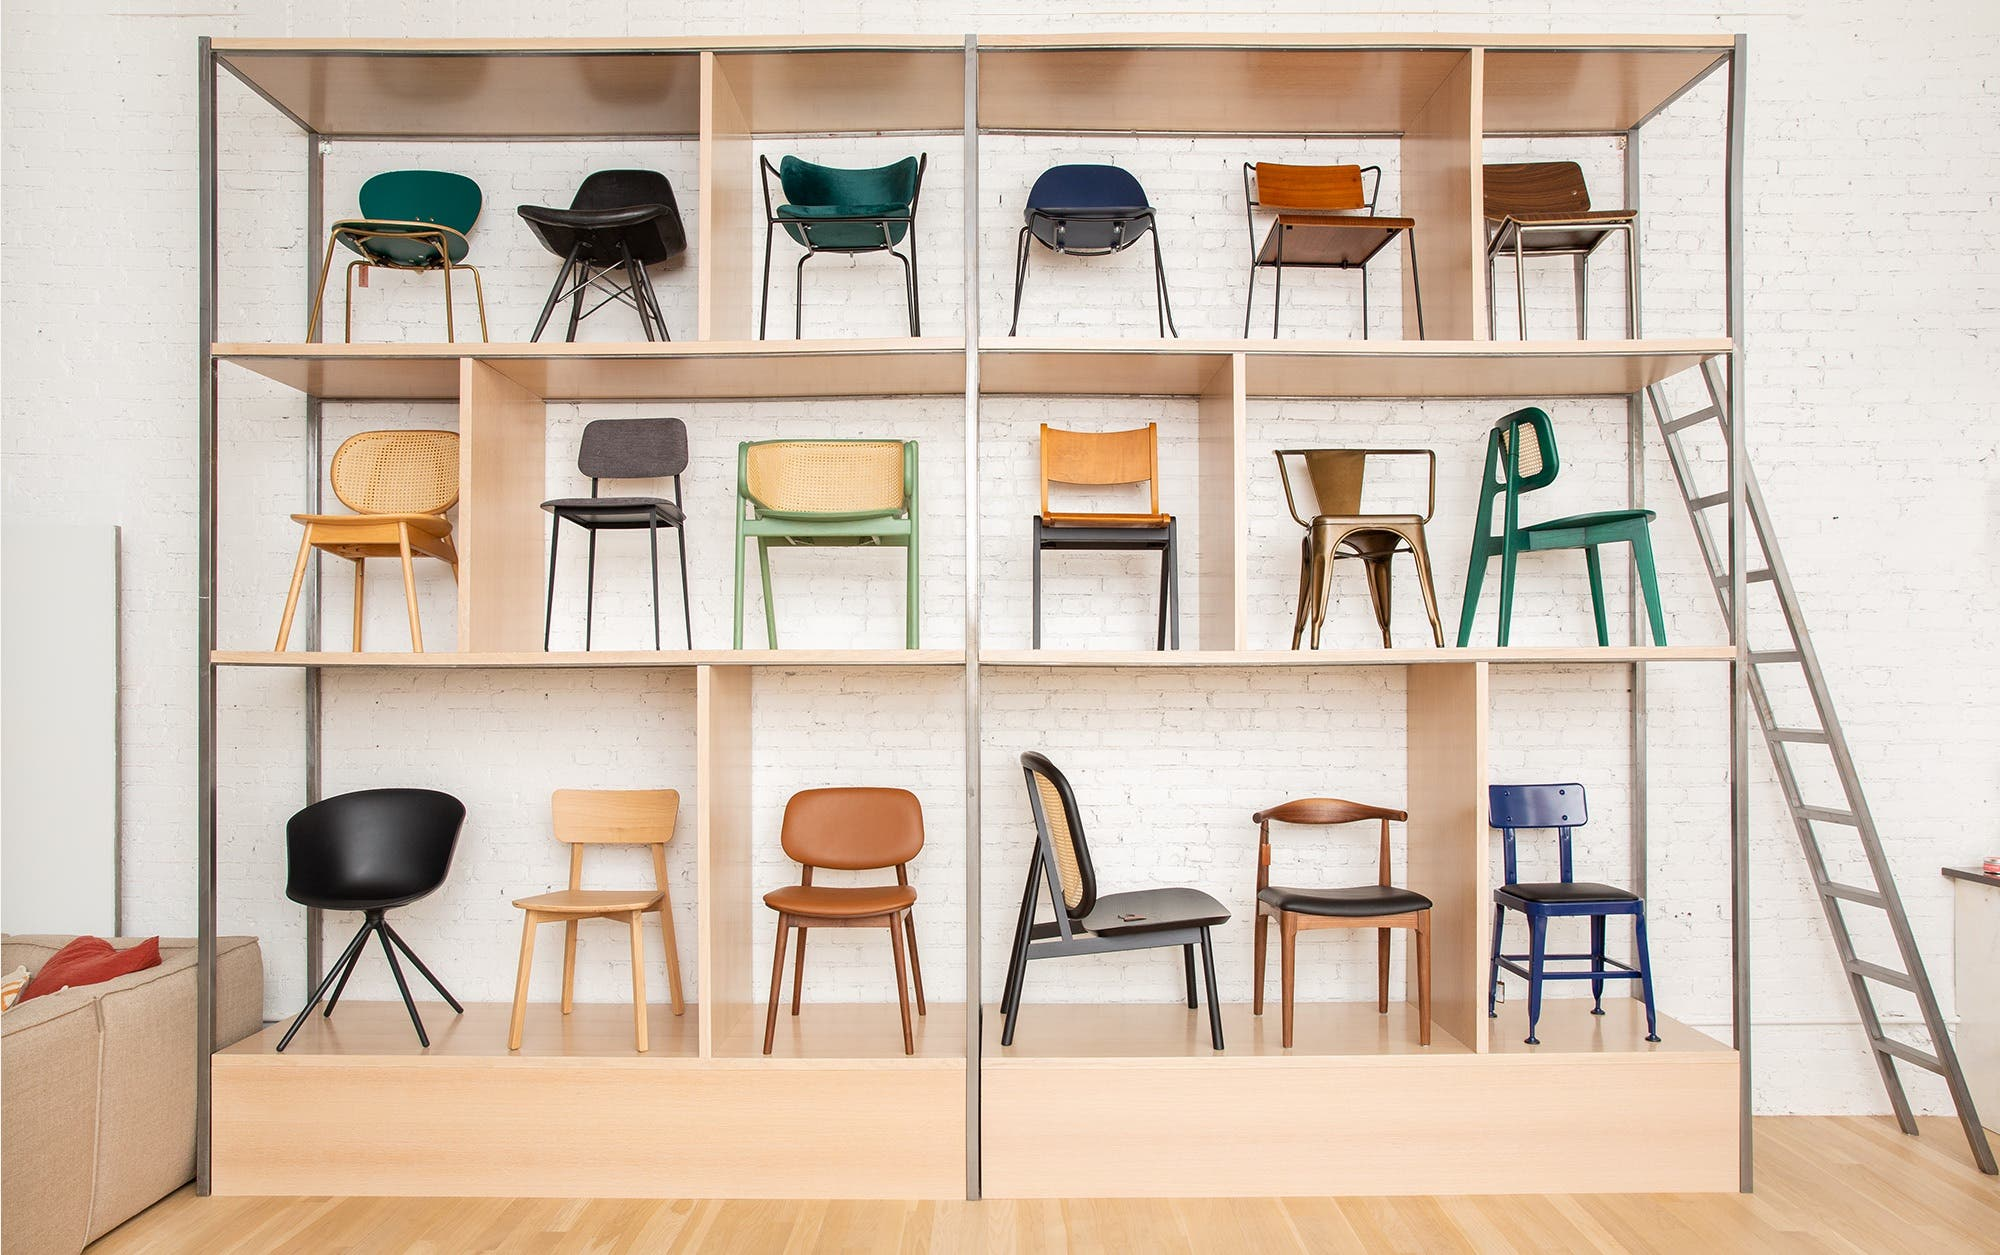 A selection of Industry West chairs arranged along tall shelves